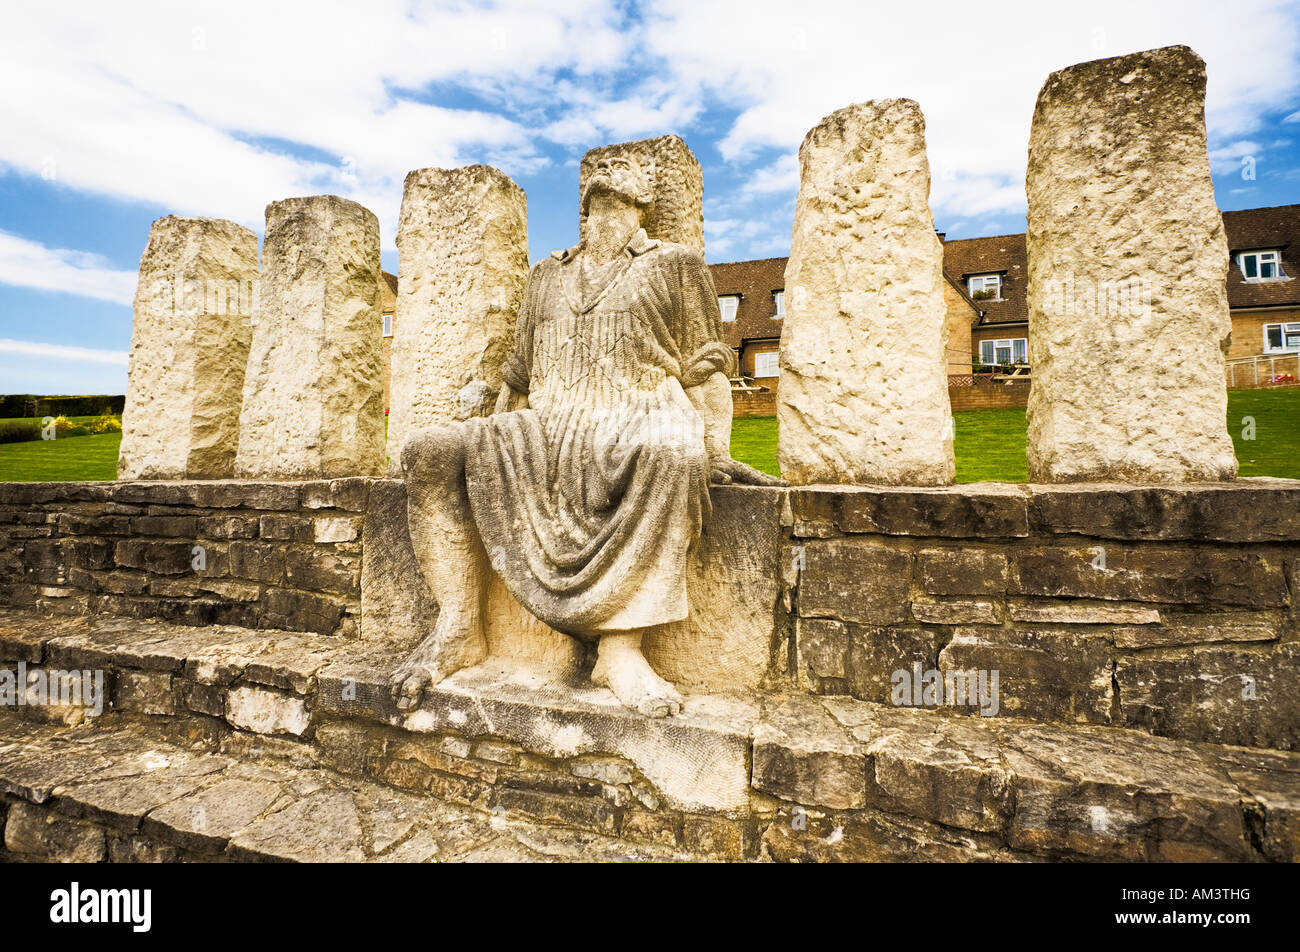 Memorial statue at the Tolpuddle Martyrs Museum Tolpuddle, Dorset, UK - Stock Image